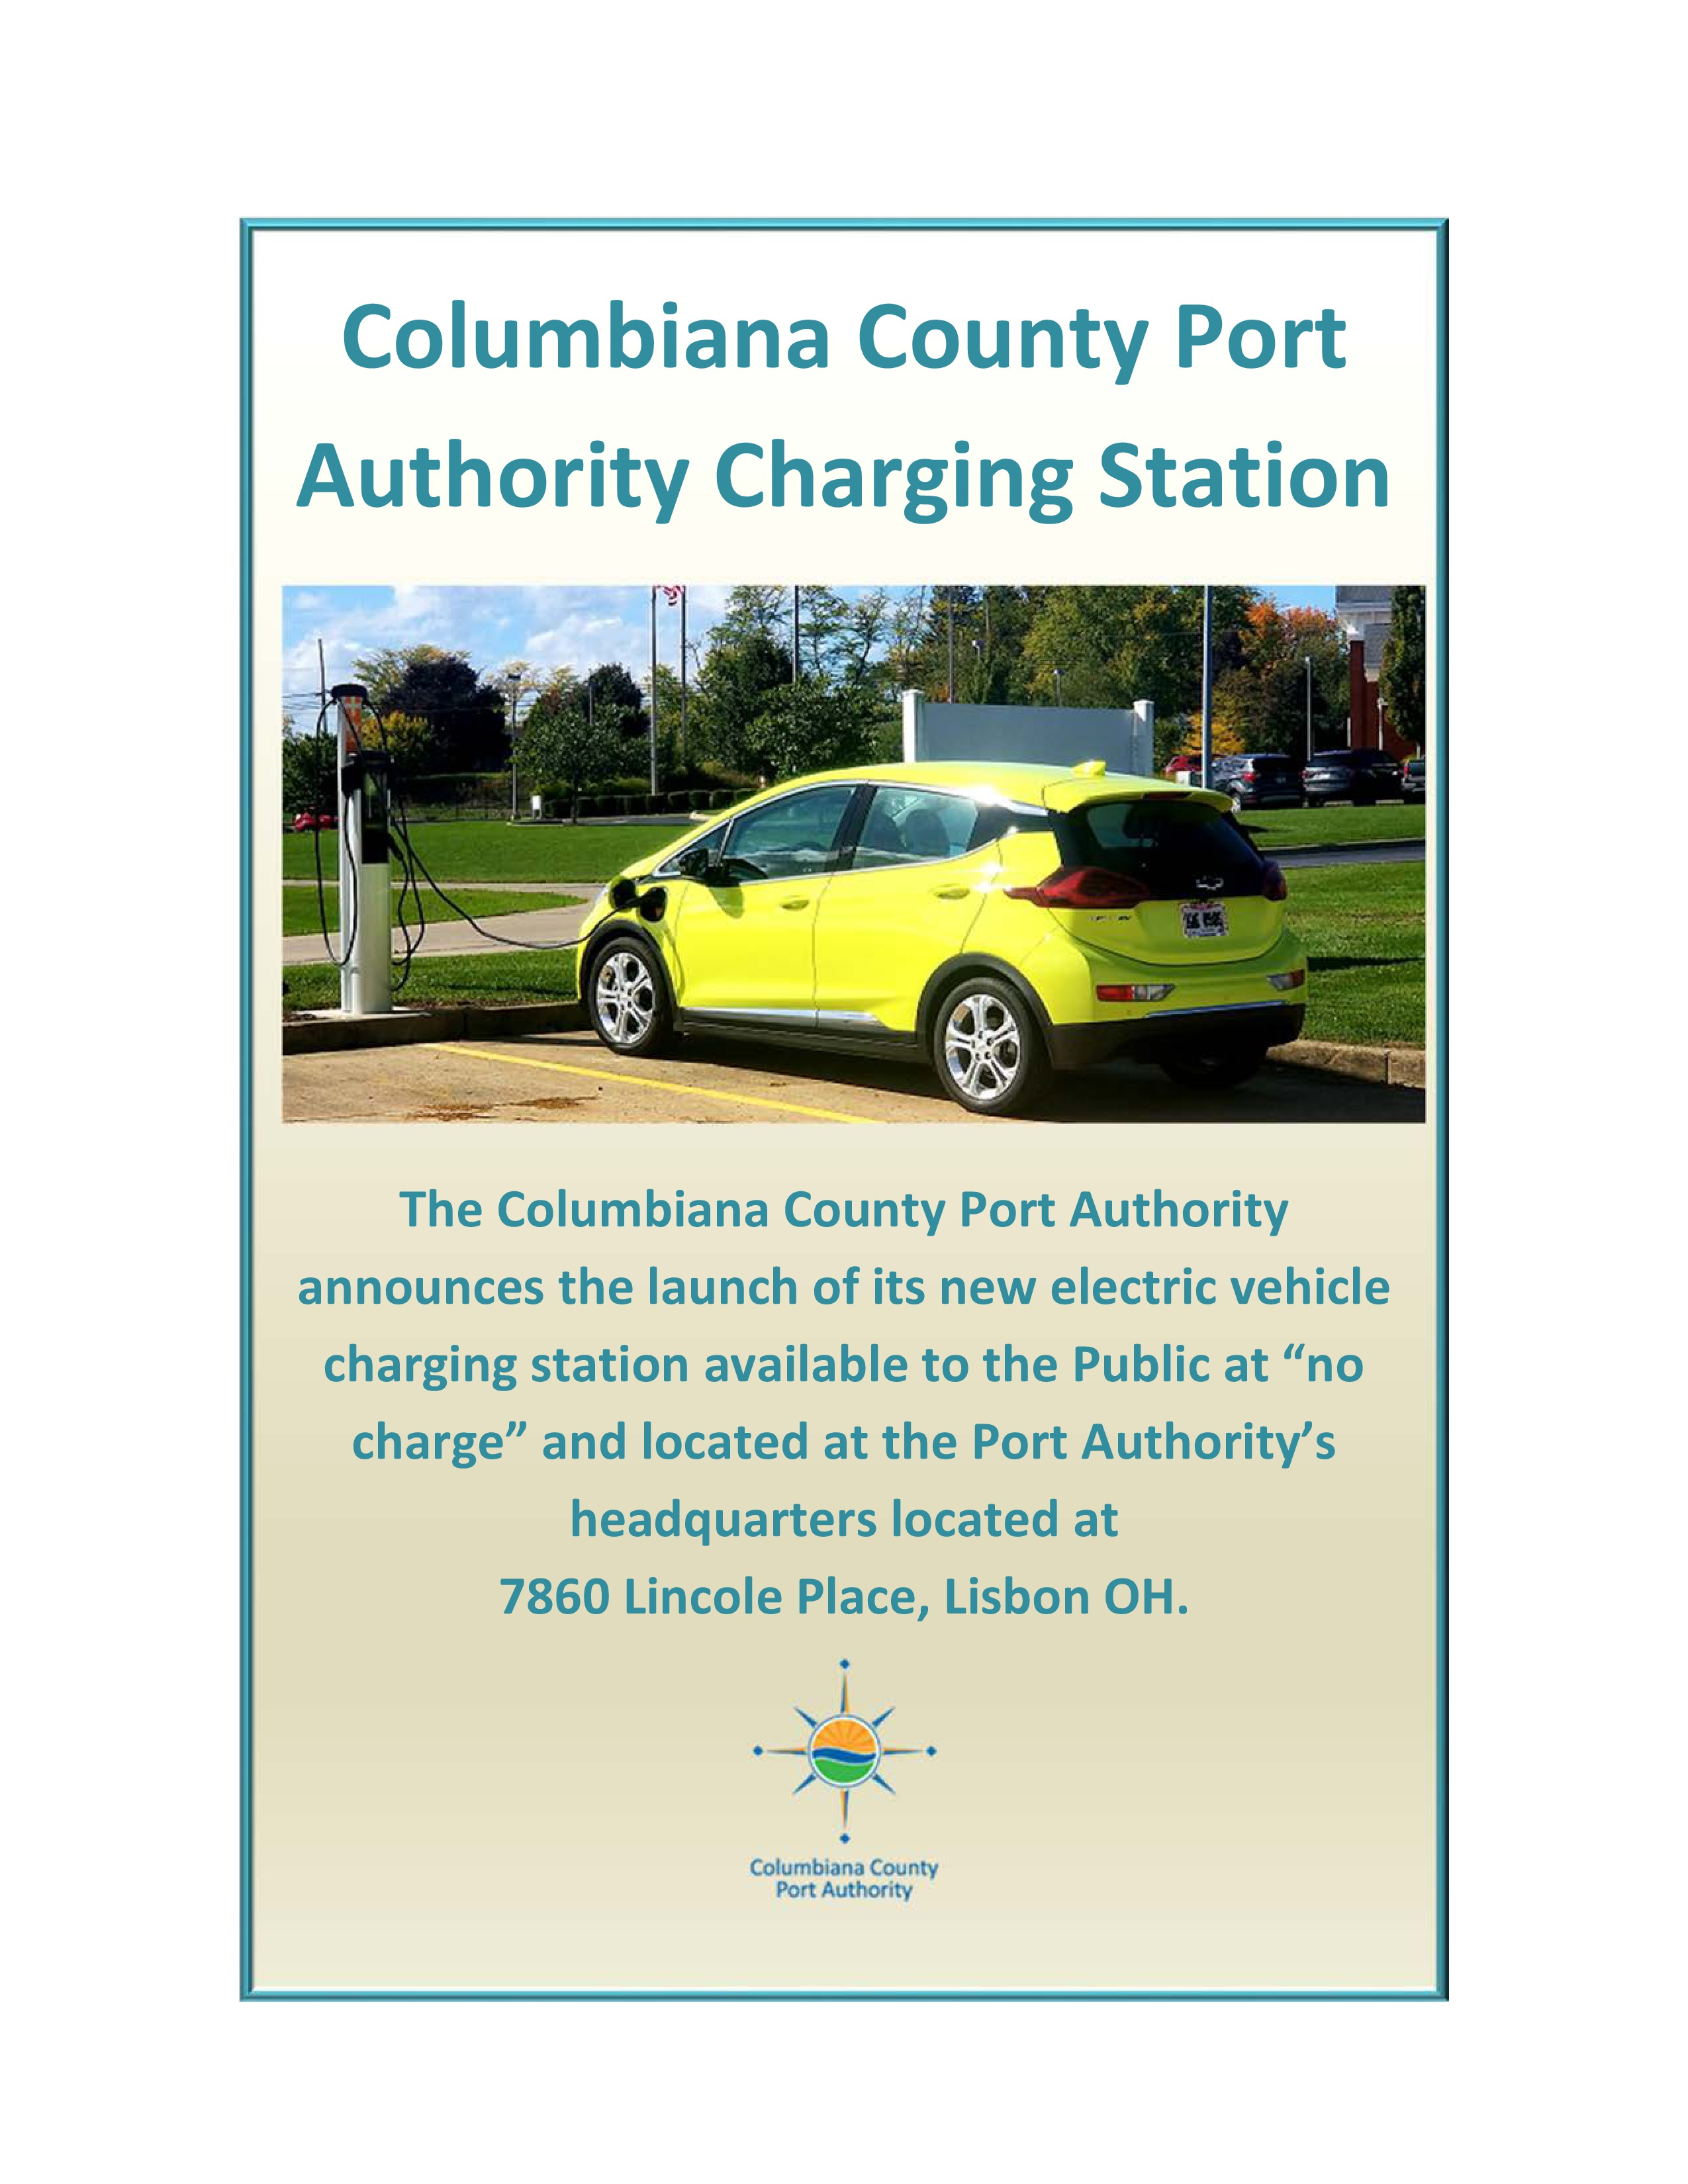 Port Authority Charging Station